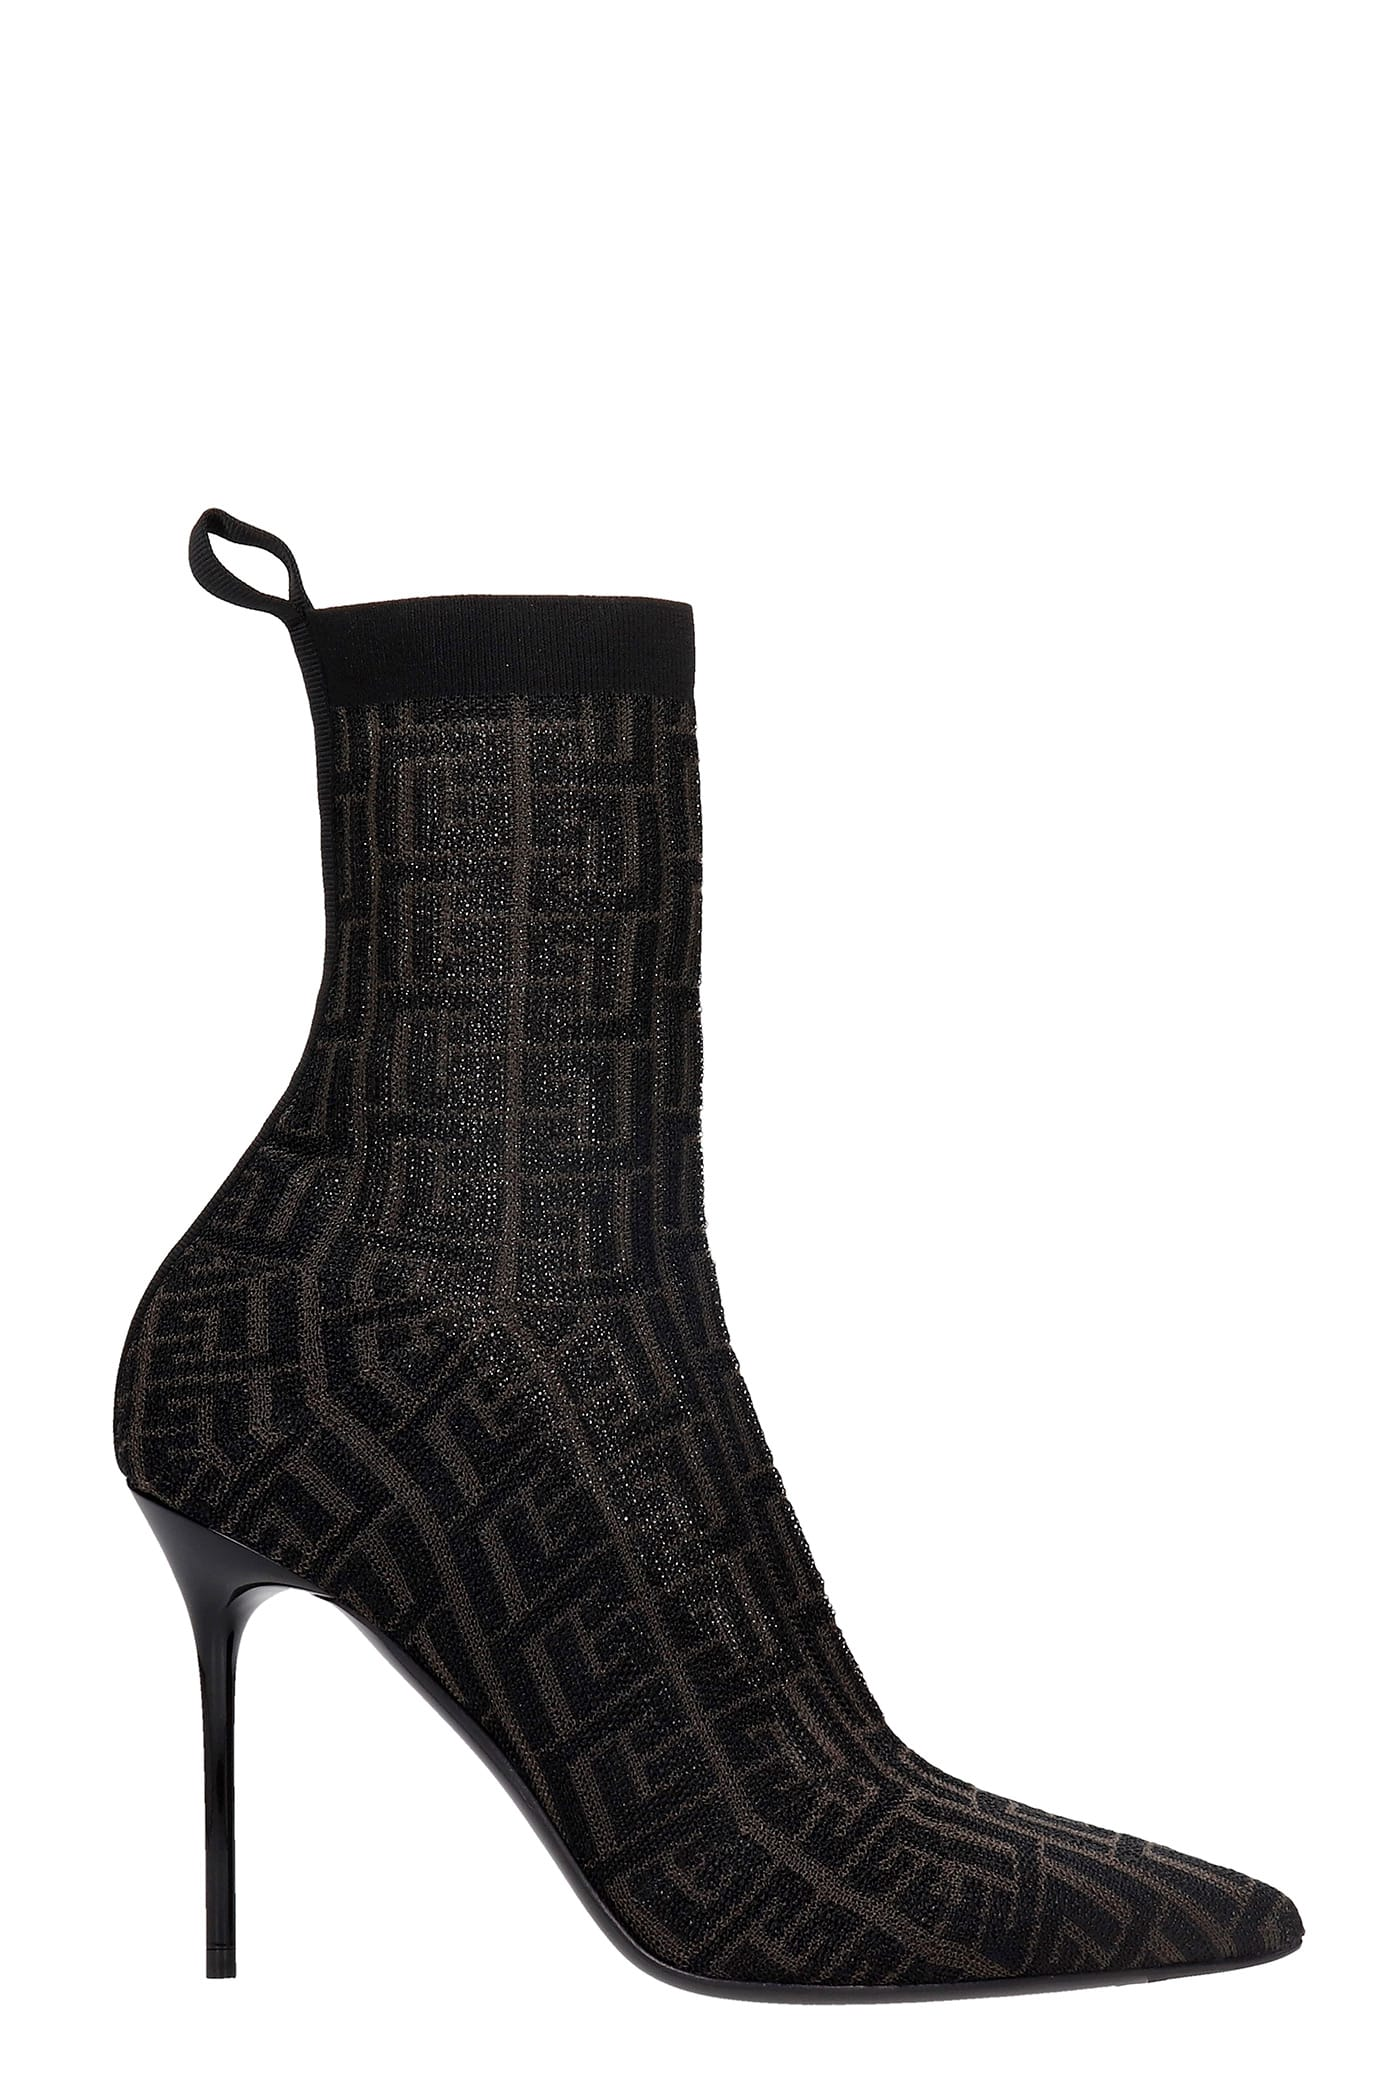 Buy Balmain High Heels Ankle Boots In Black Synthetic Fibers online, shop Balmain shoes with free shipping